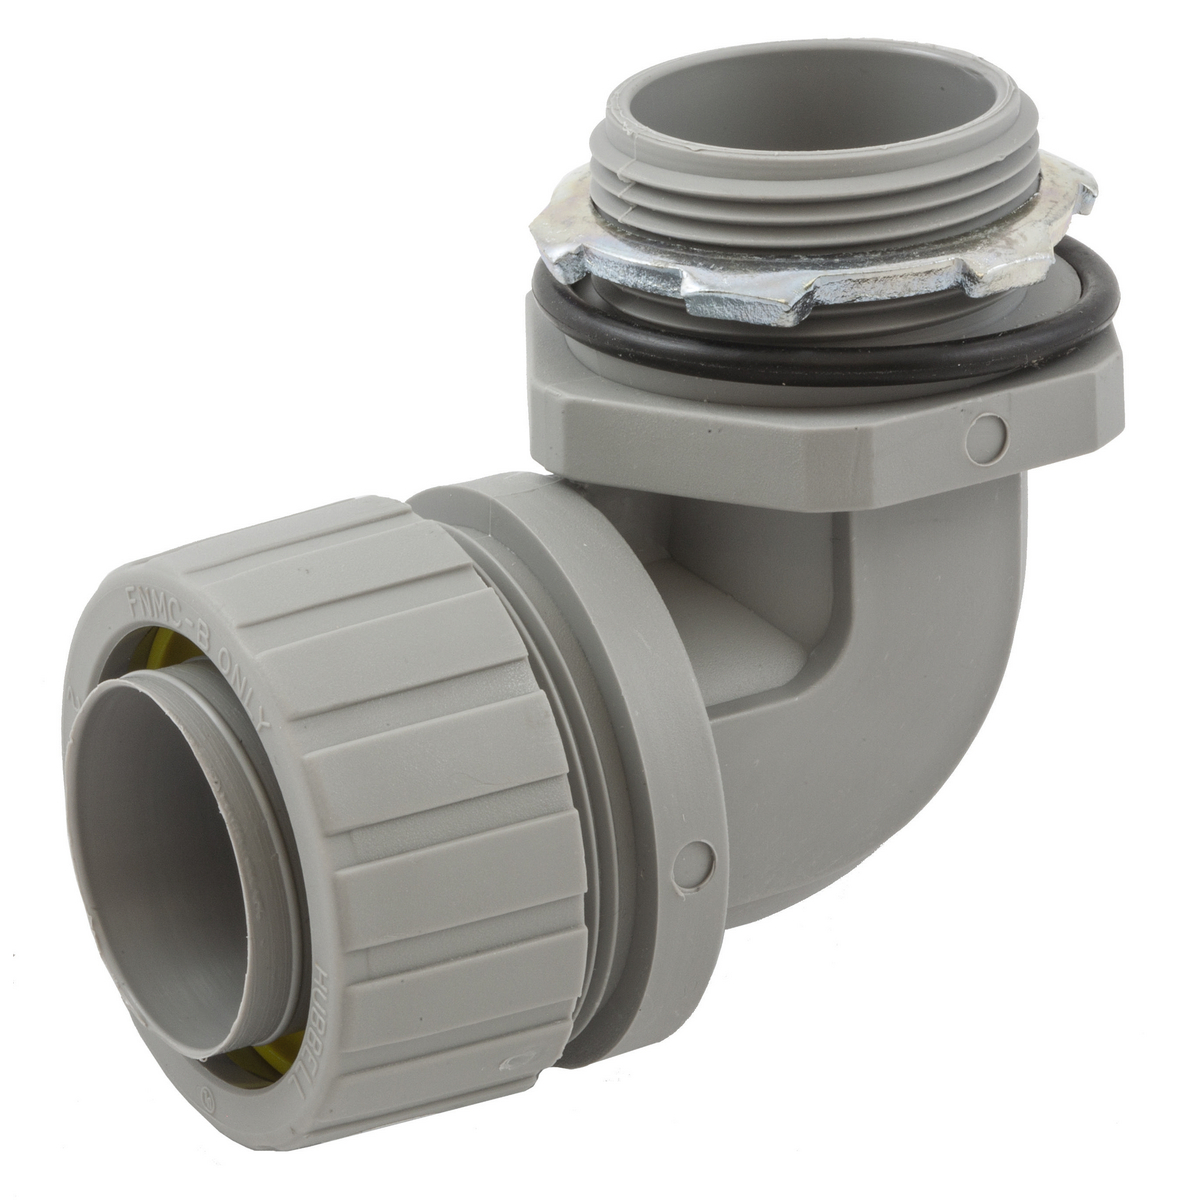 Hubbell P1259NGY Conduit Liquidtight Connector